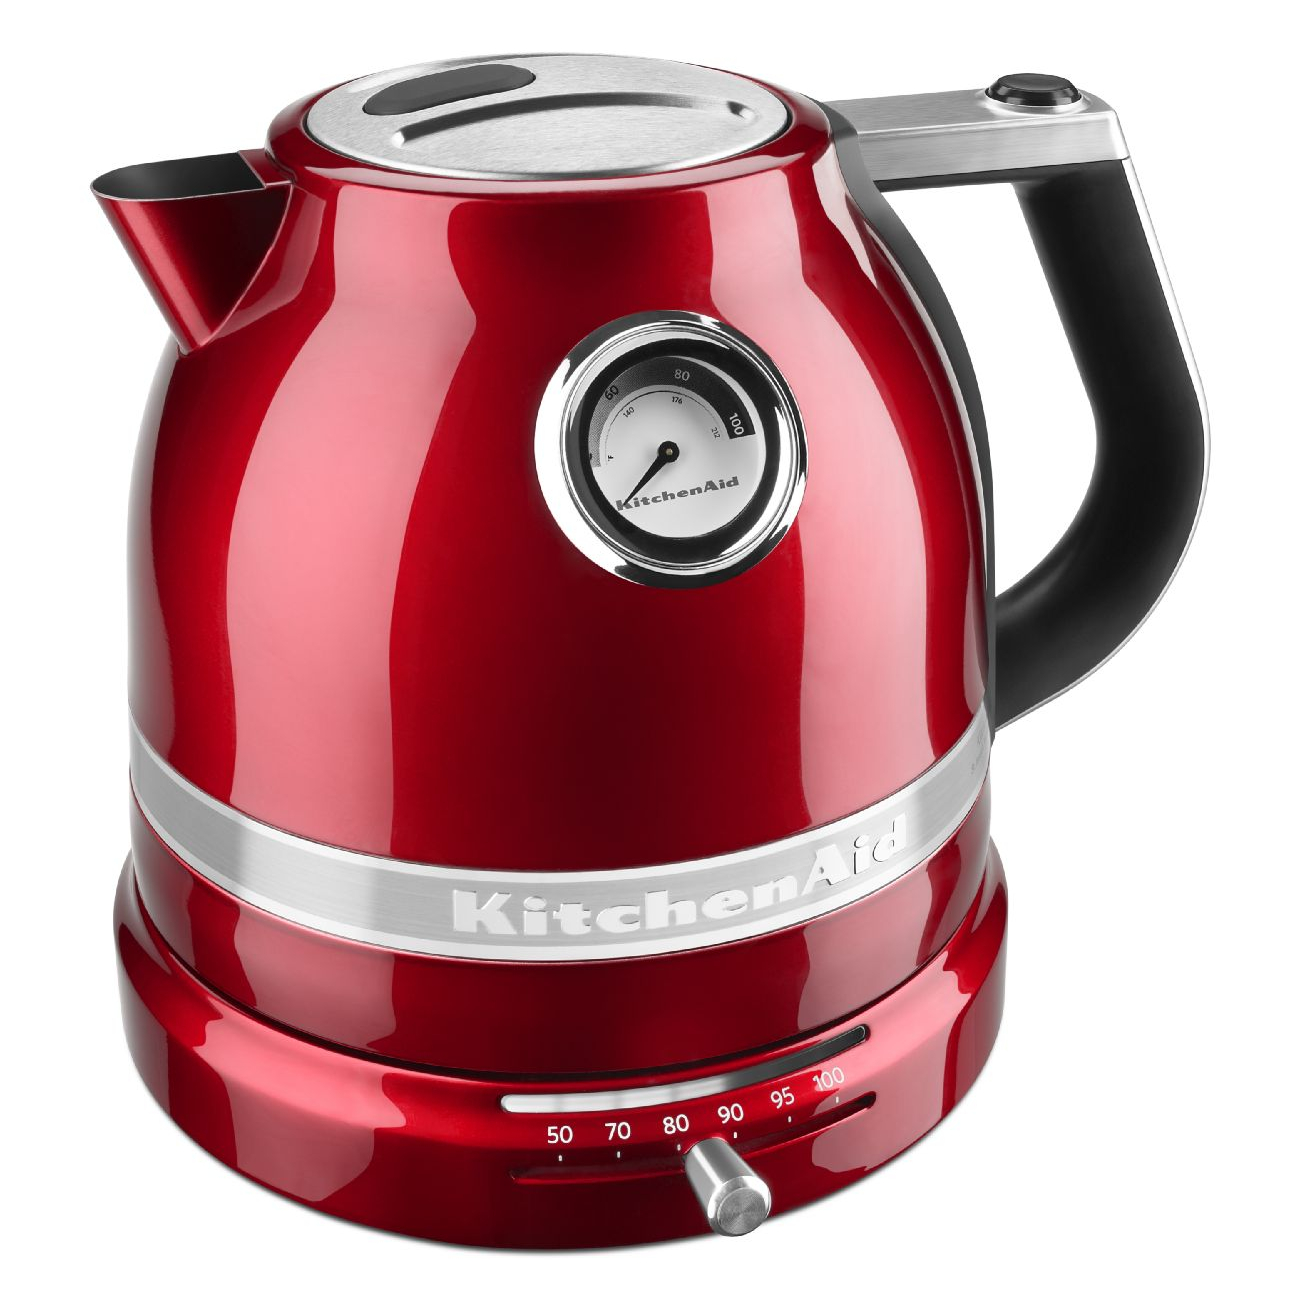 KitchenAid Pro Line Candy Apple Red 1.5 Liter Electric Kettle